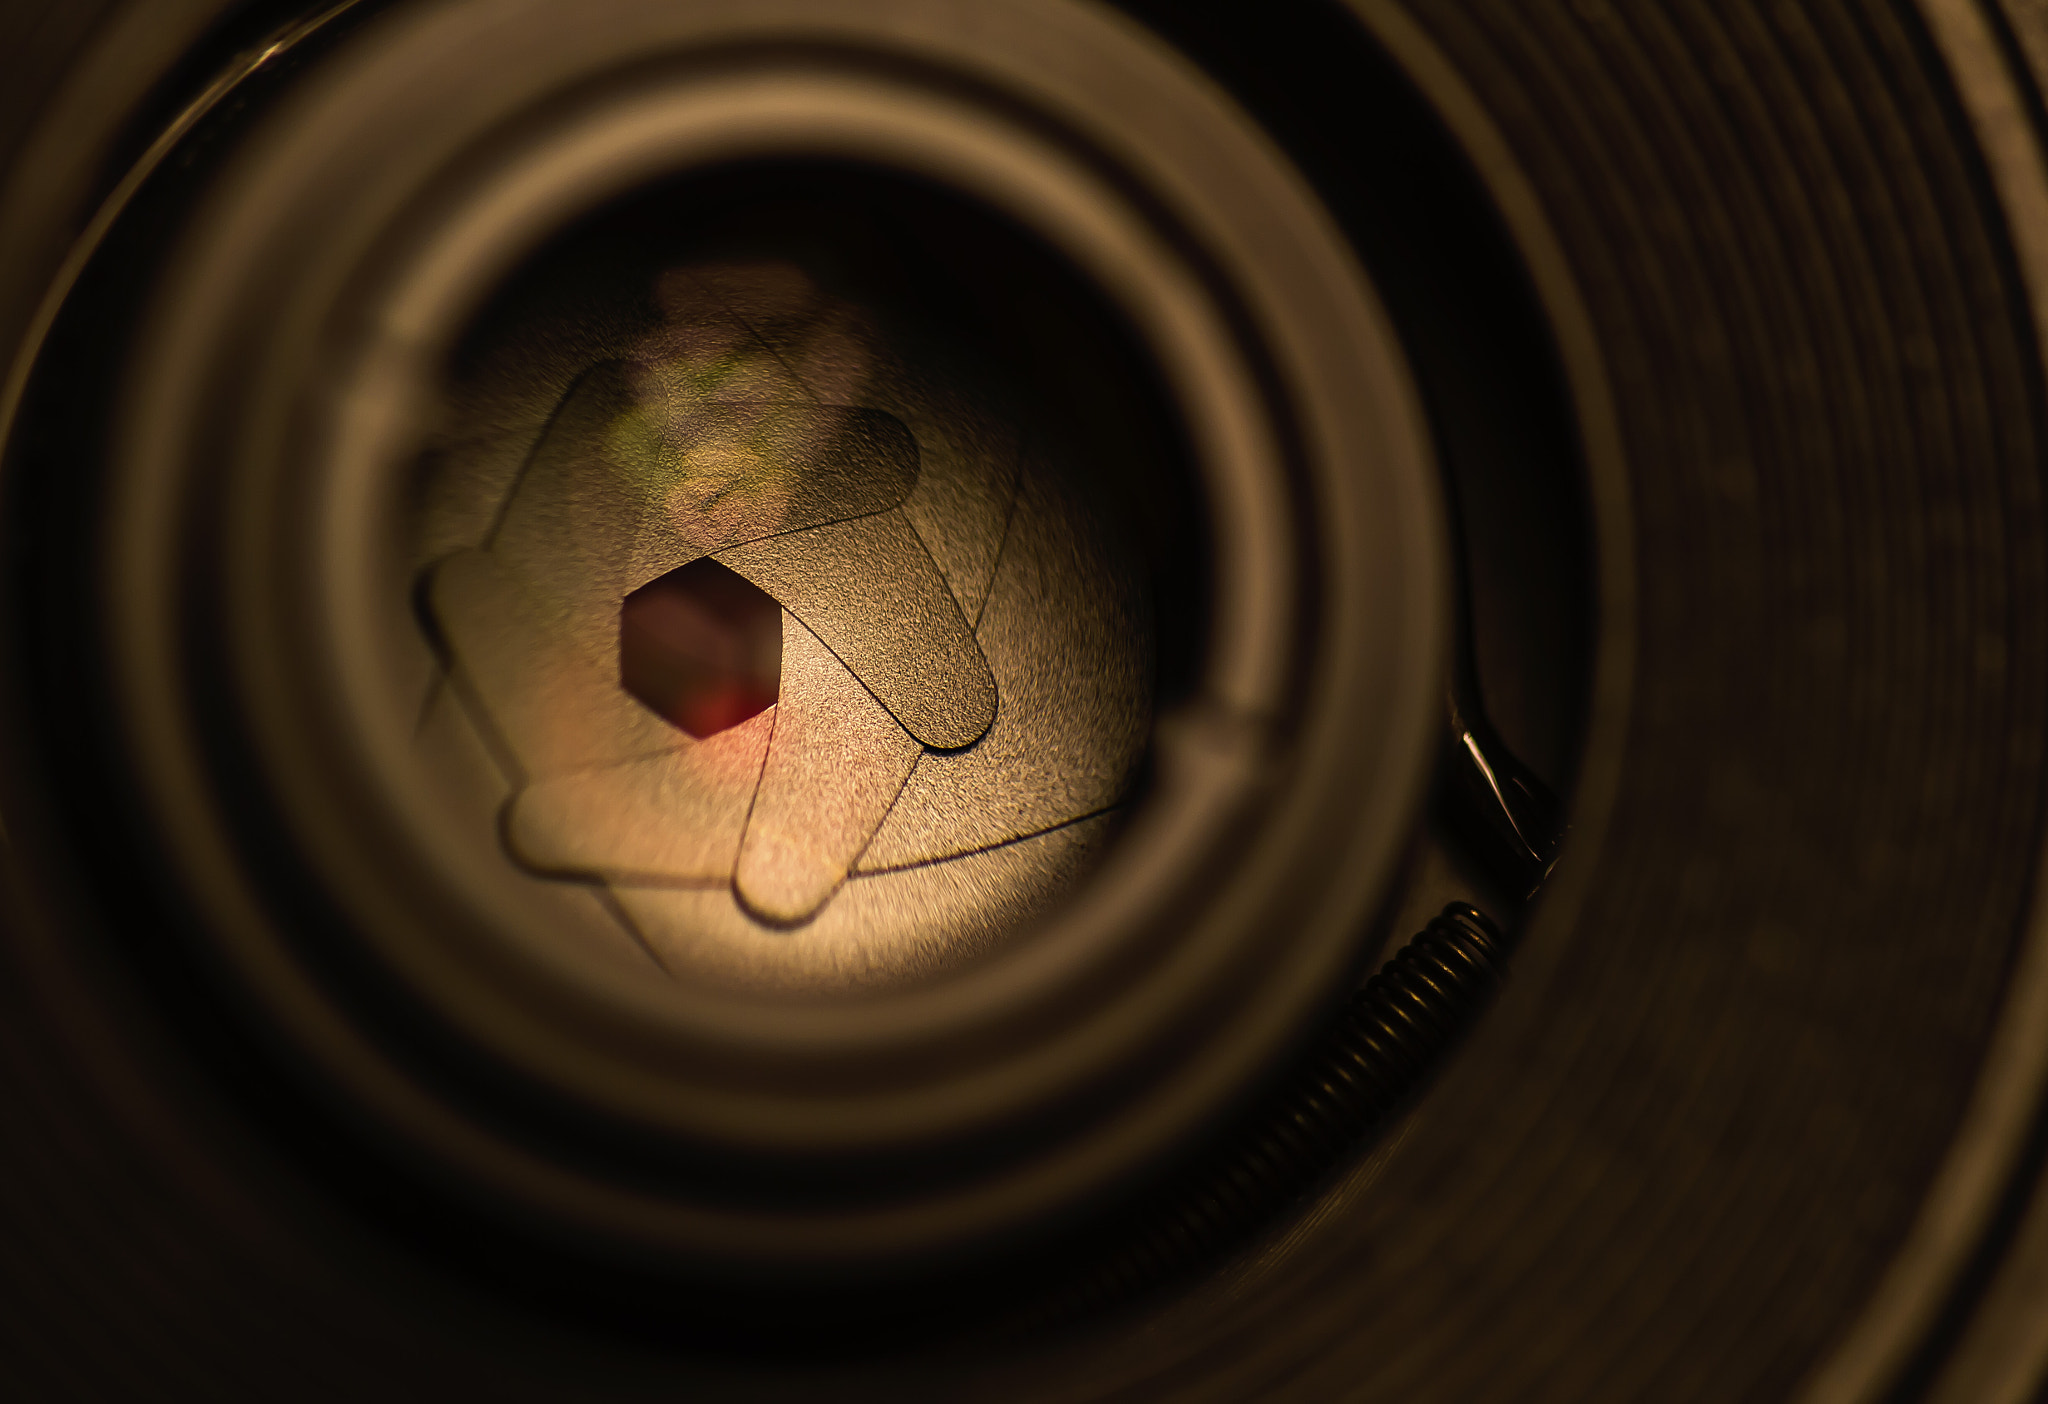 Photograph Aperture Lens by Ahmed Abd Al Aziz on 500px